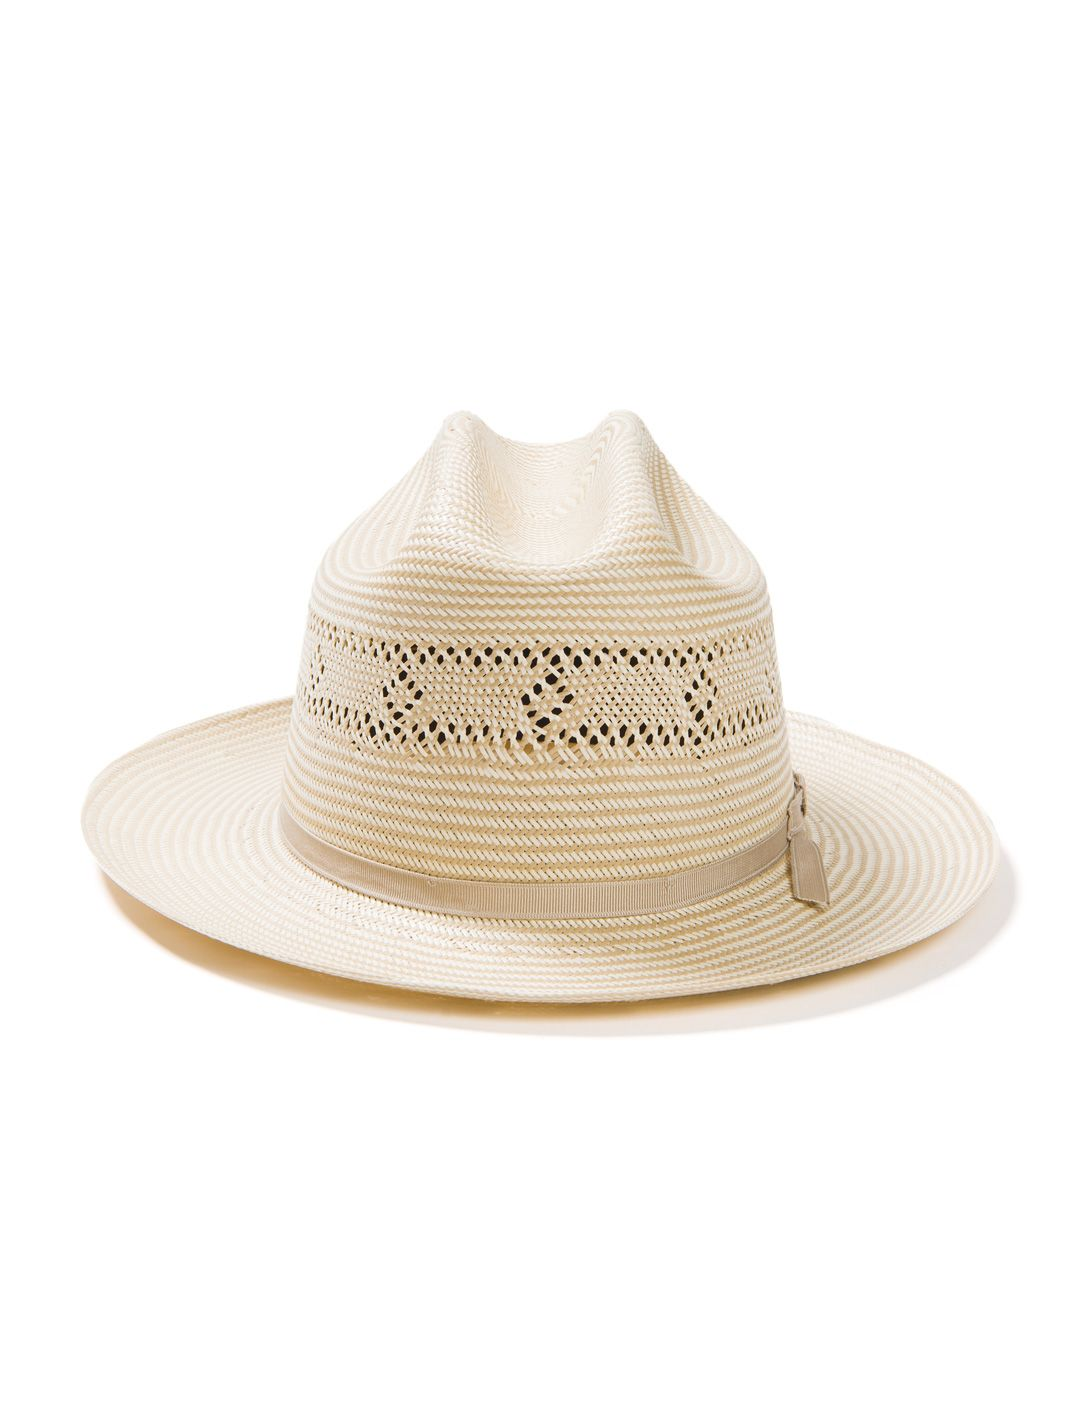 ab1ed260f Open Road Straw by Stetson